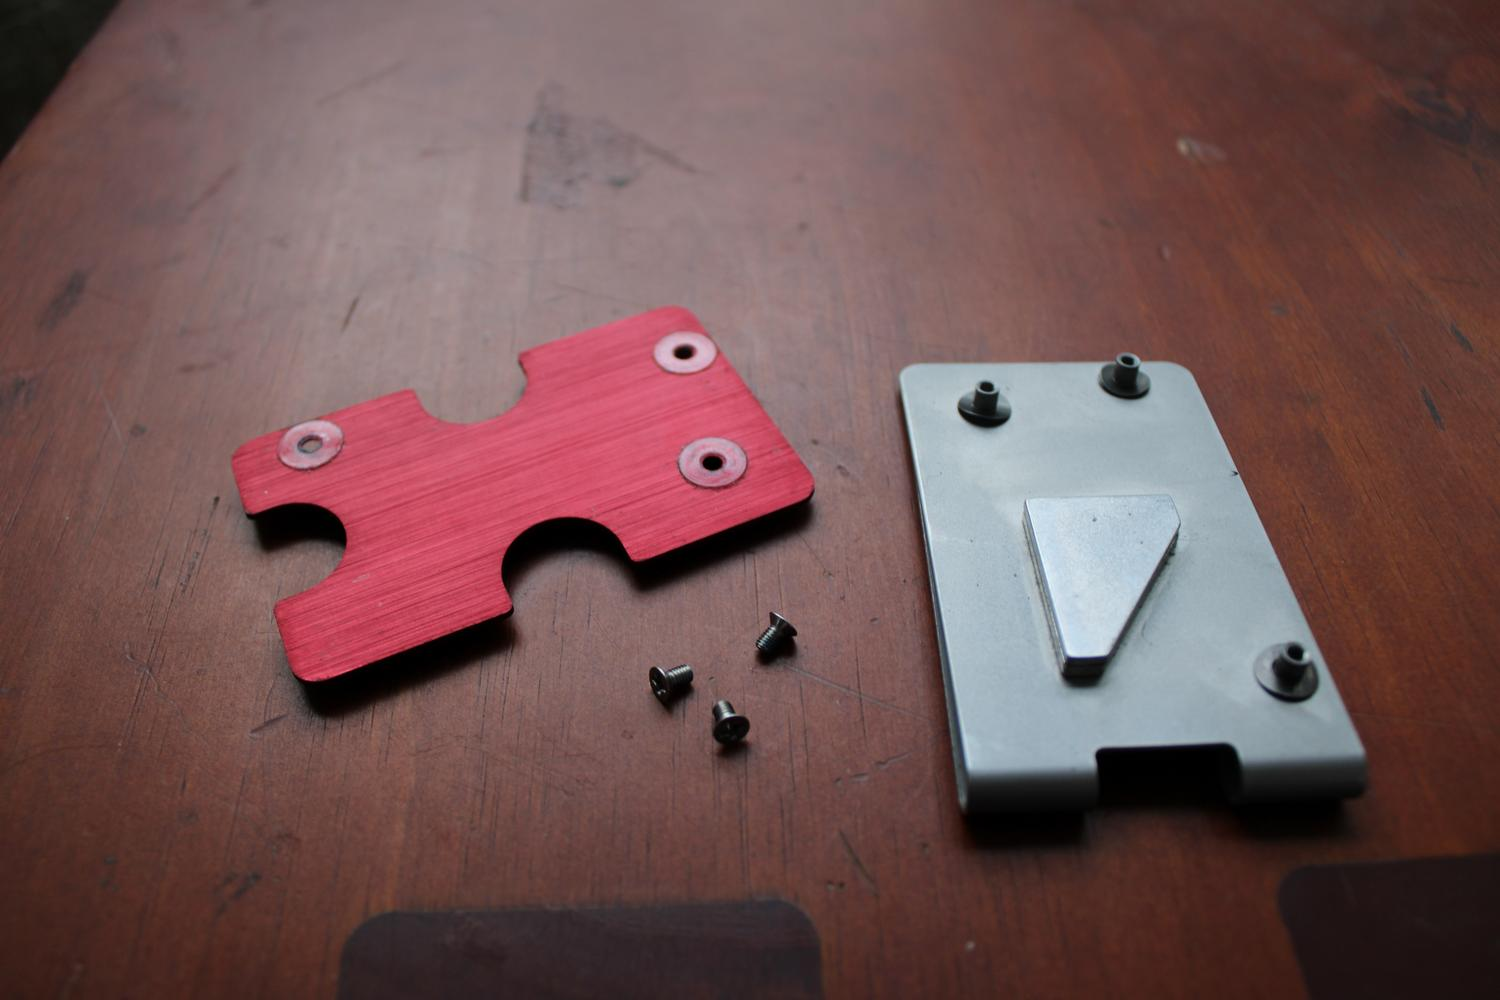 A close up photo of a table surface containing a metal device that has been unscrewed. The base plate is on the right with three little stands to provide room in between itself and the top plate. The idea is that the cards sit in between the gap. The top plate is red and sitting to the left of the base plate with three small screws sitting just below it.